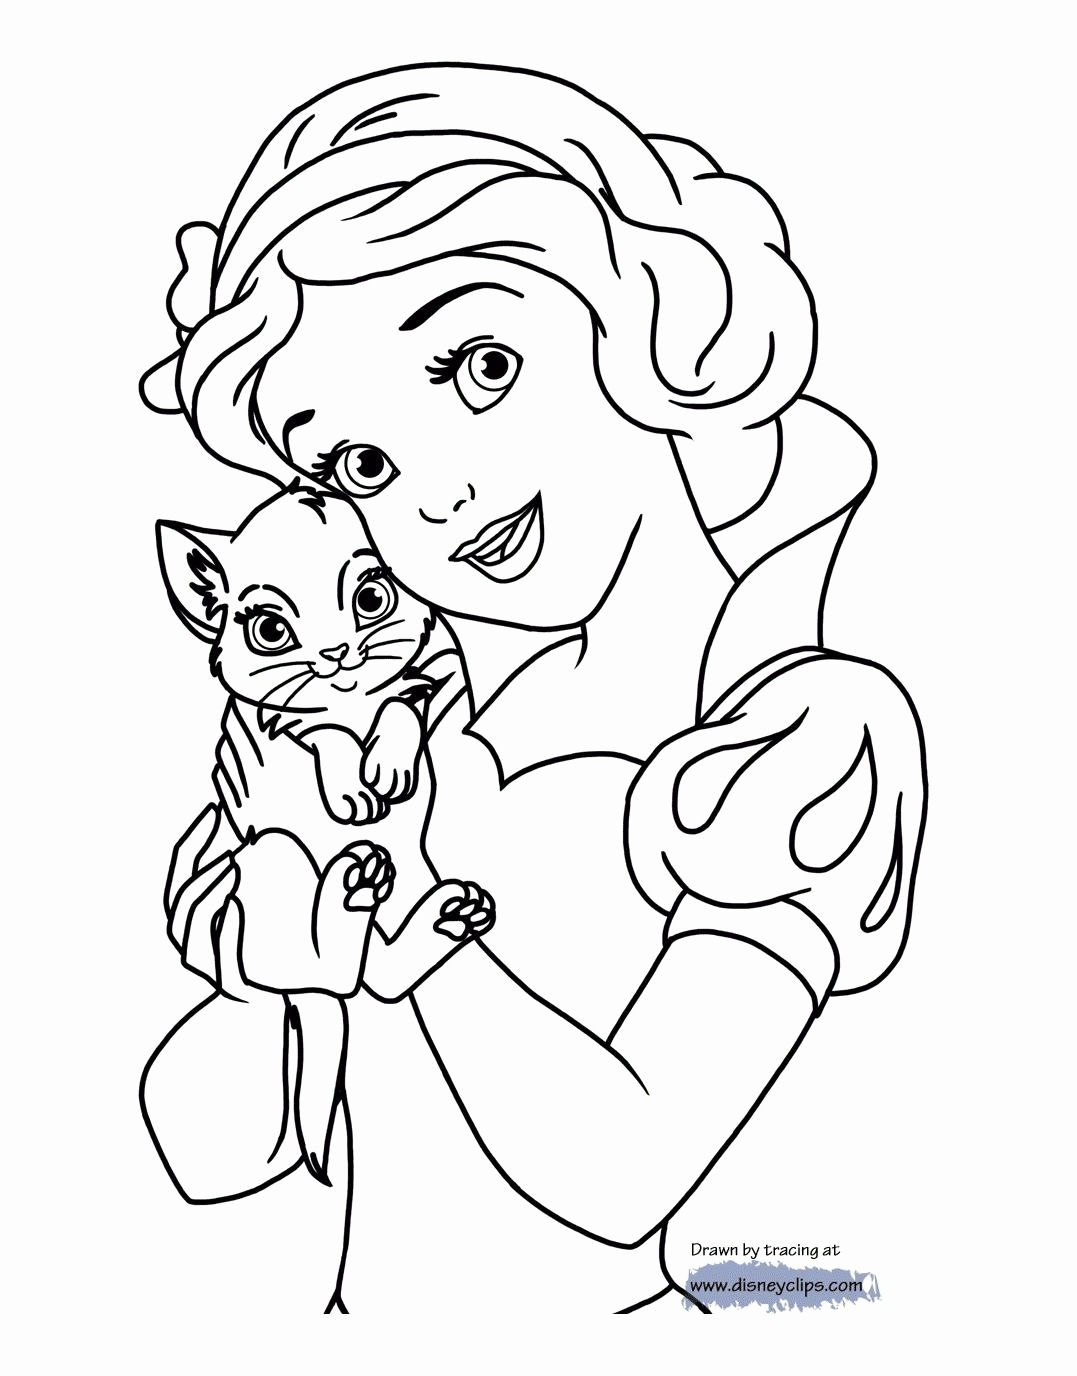 1077x1376 Finding Nemo Darla Catch Finding Nemo Coloring Pages New